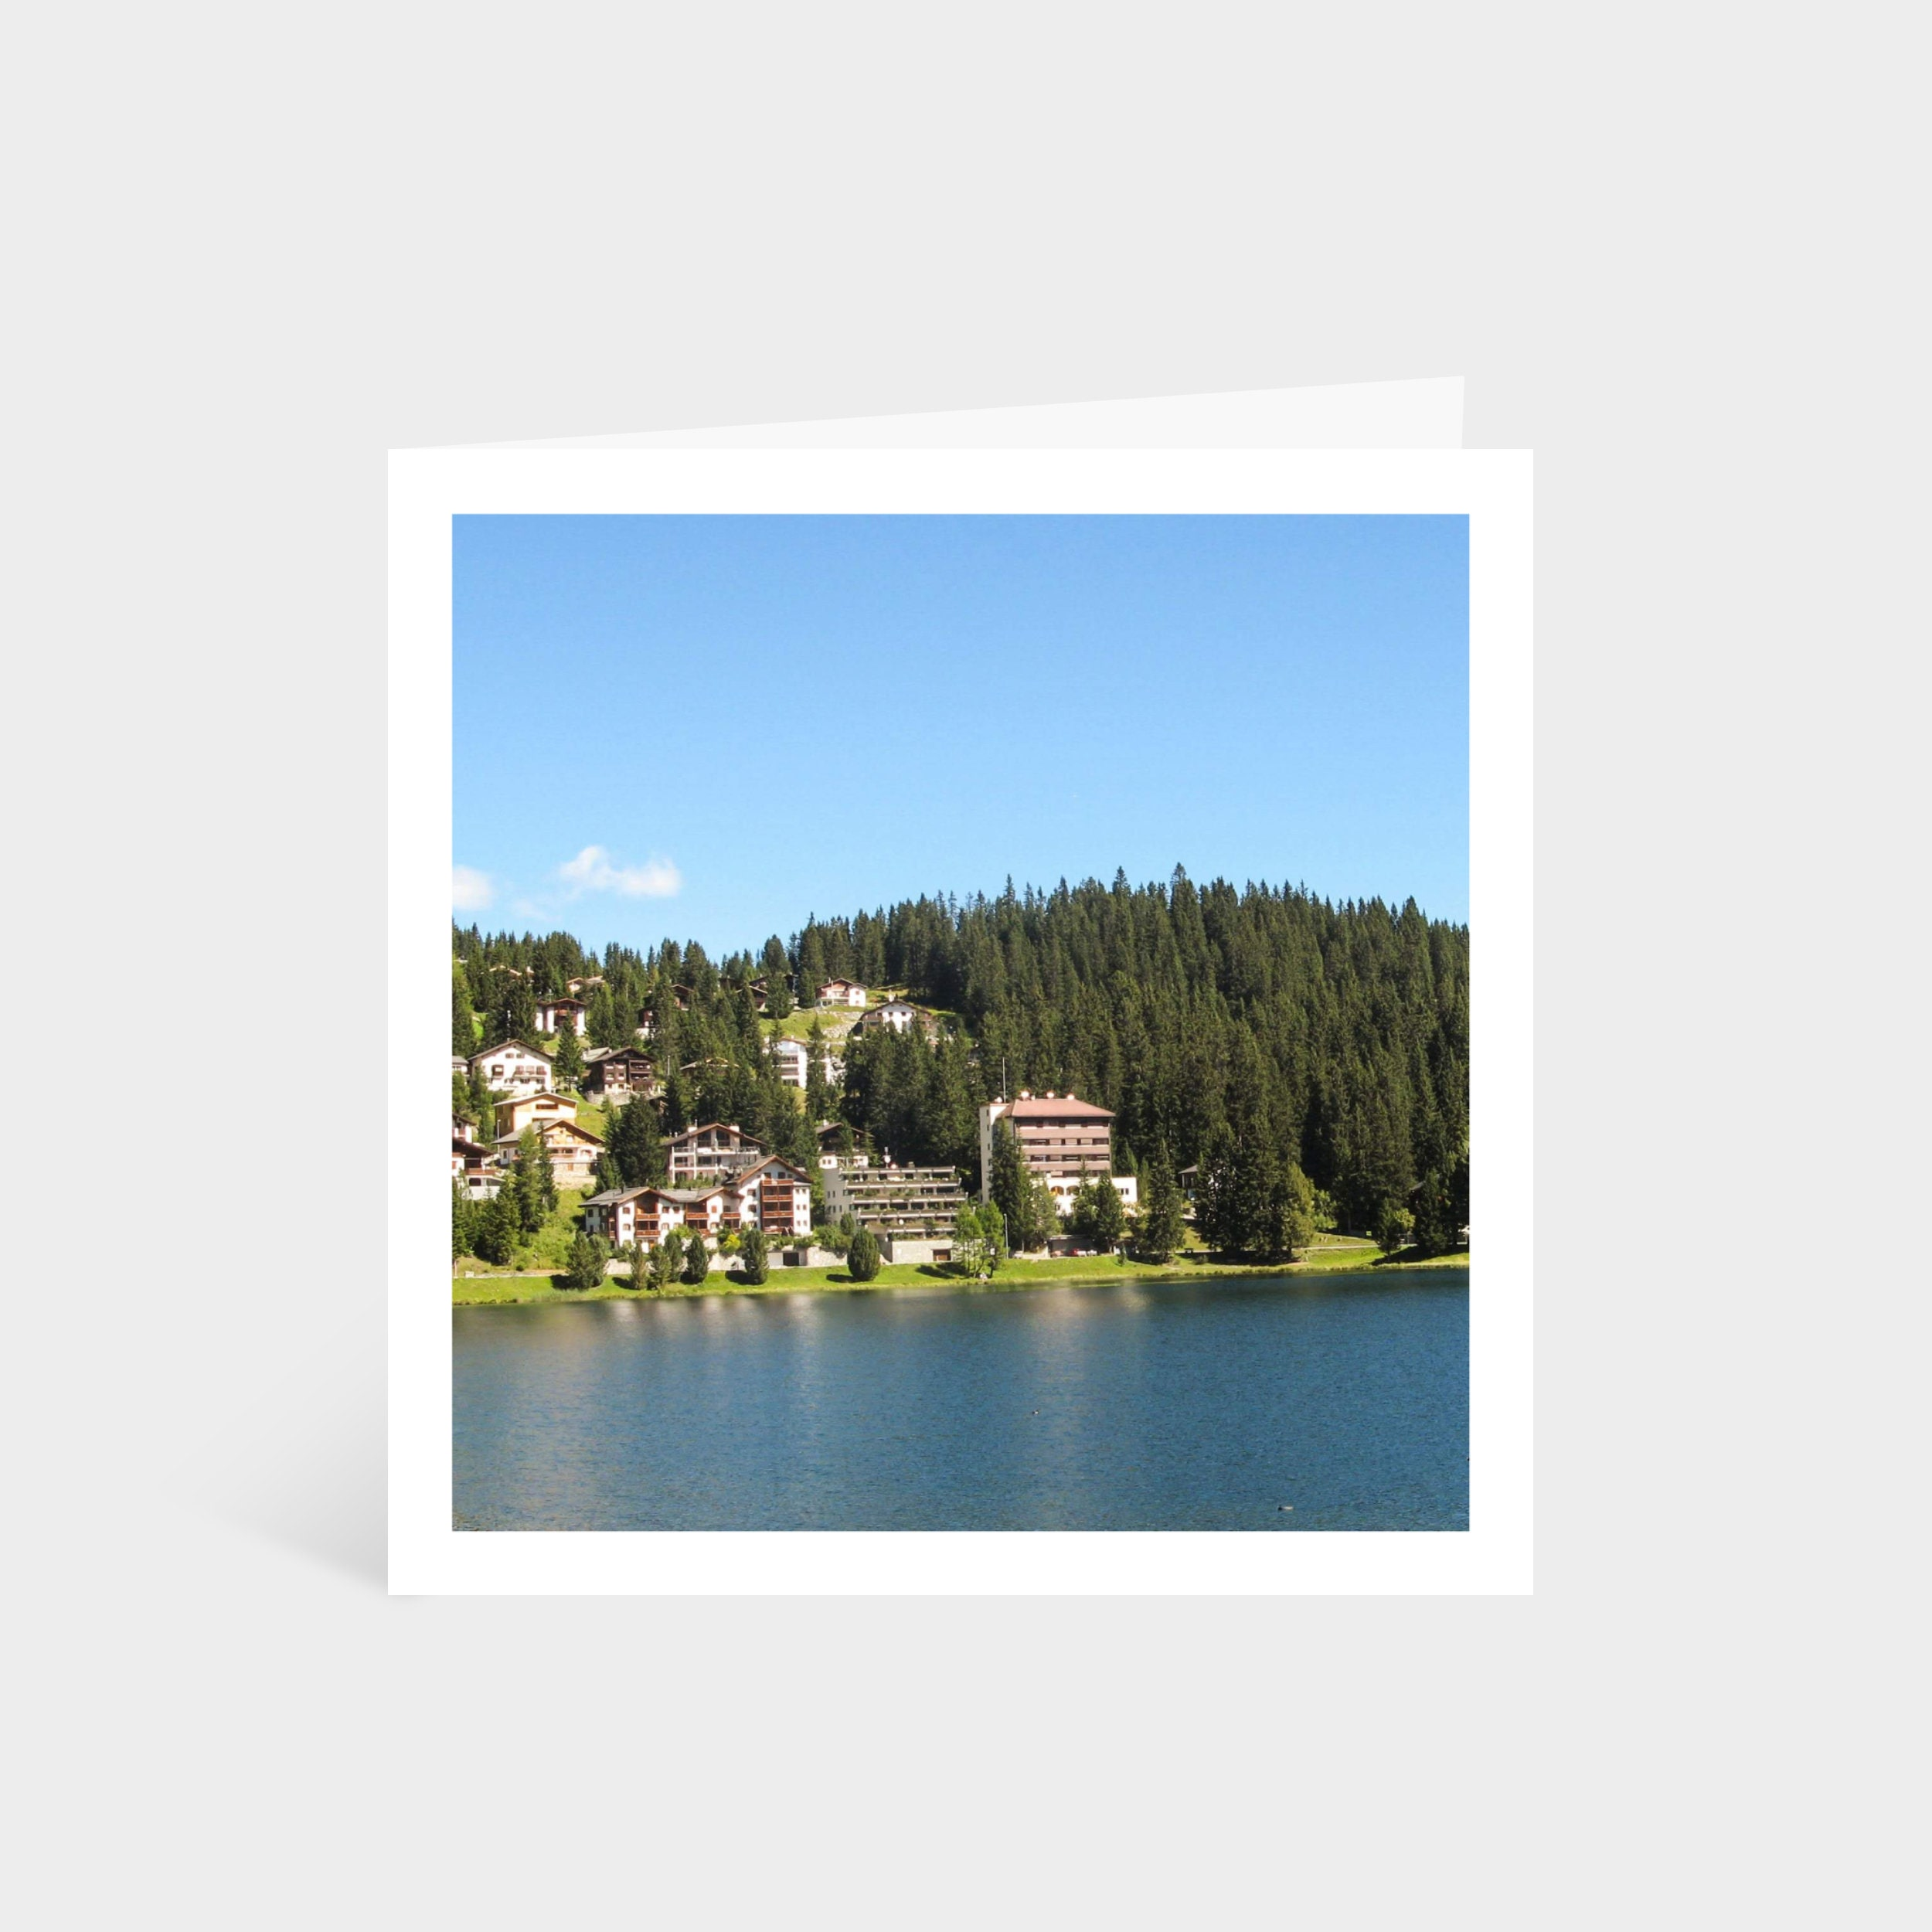 Standing square card with a photo of a green Switzerland landscape with houses overlooking a lake